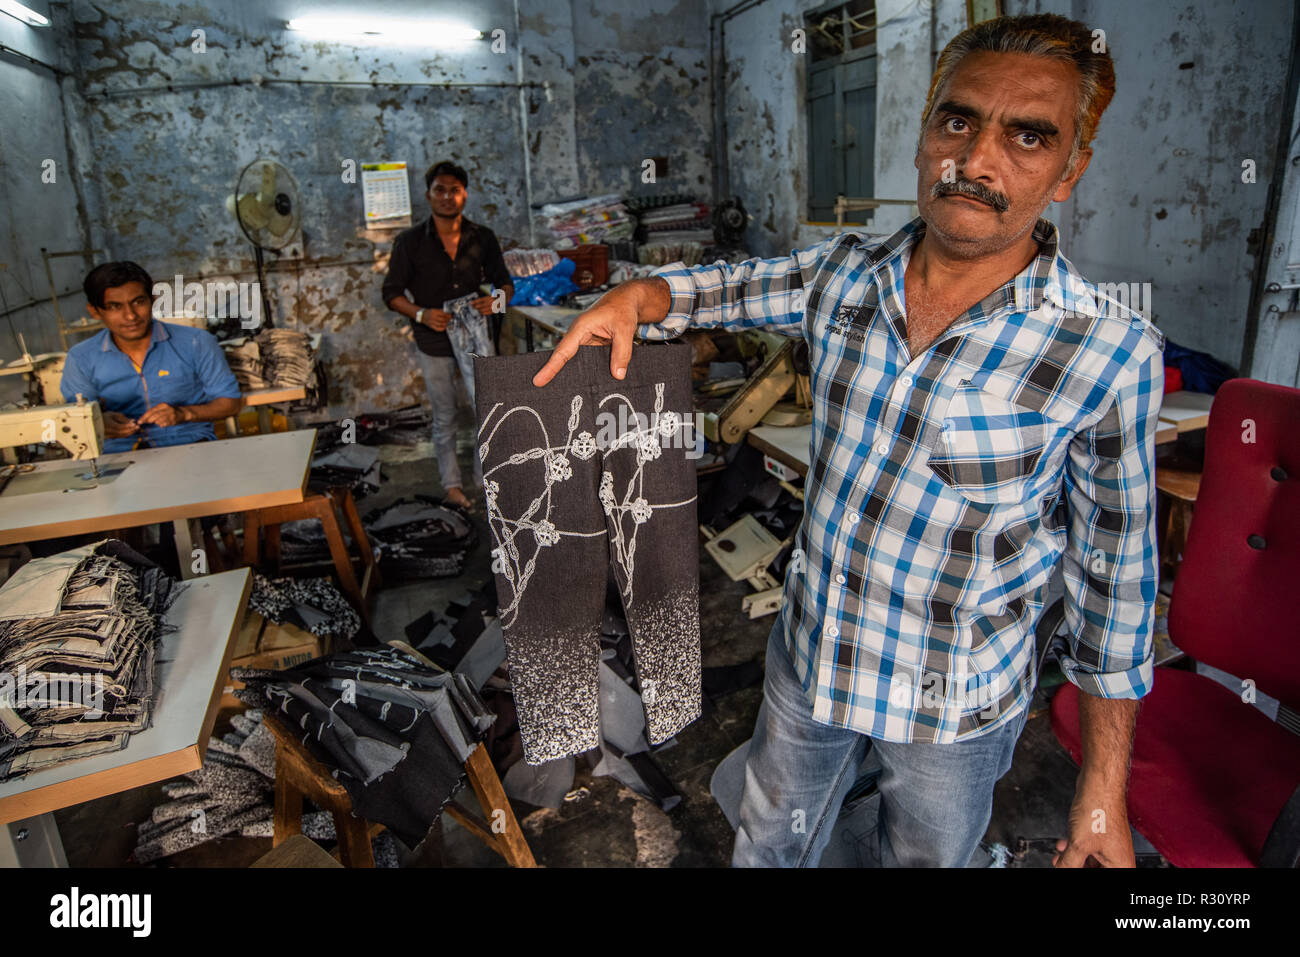 A tailoring shop owner shows off his wares posing in his small sweatshop in Ahmedabad, while his other employees look on. Gujarat, India - Stock Image